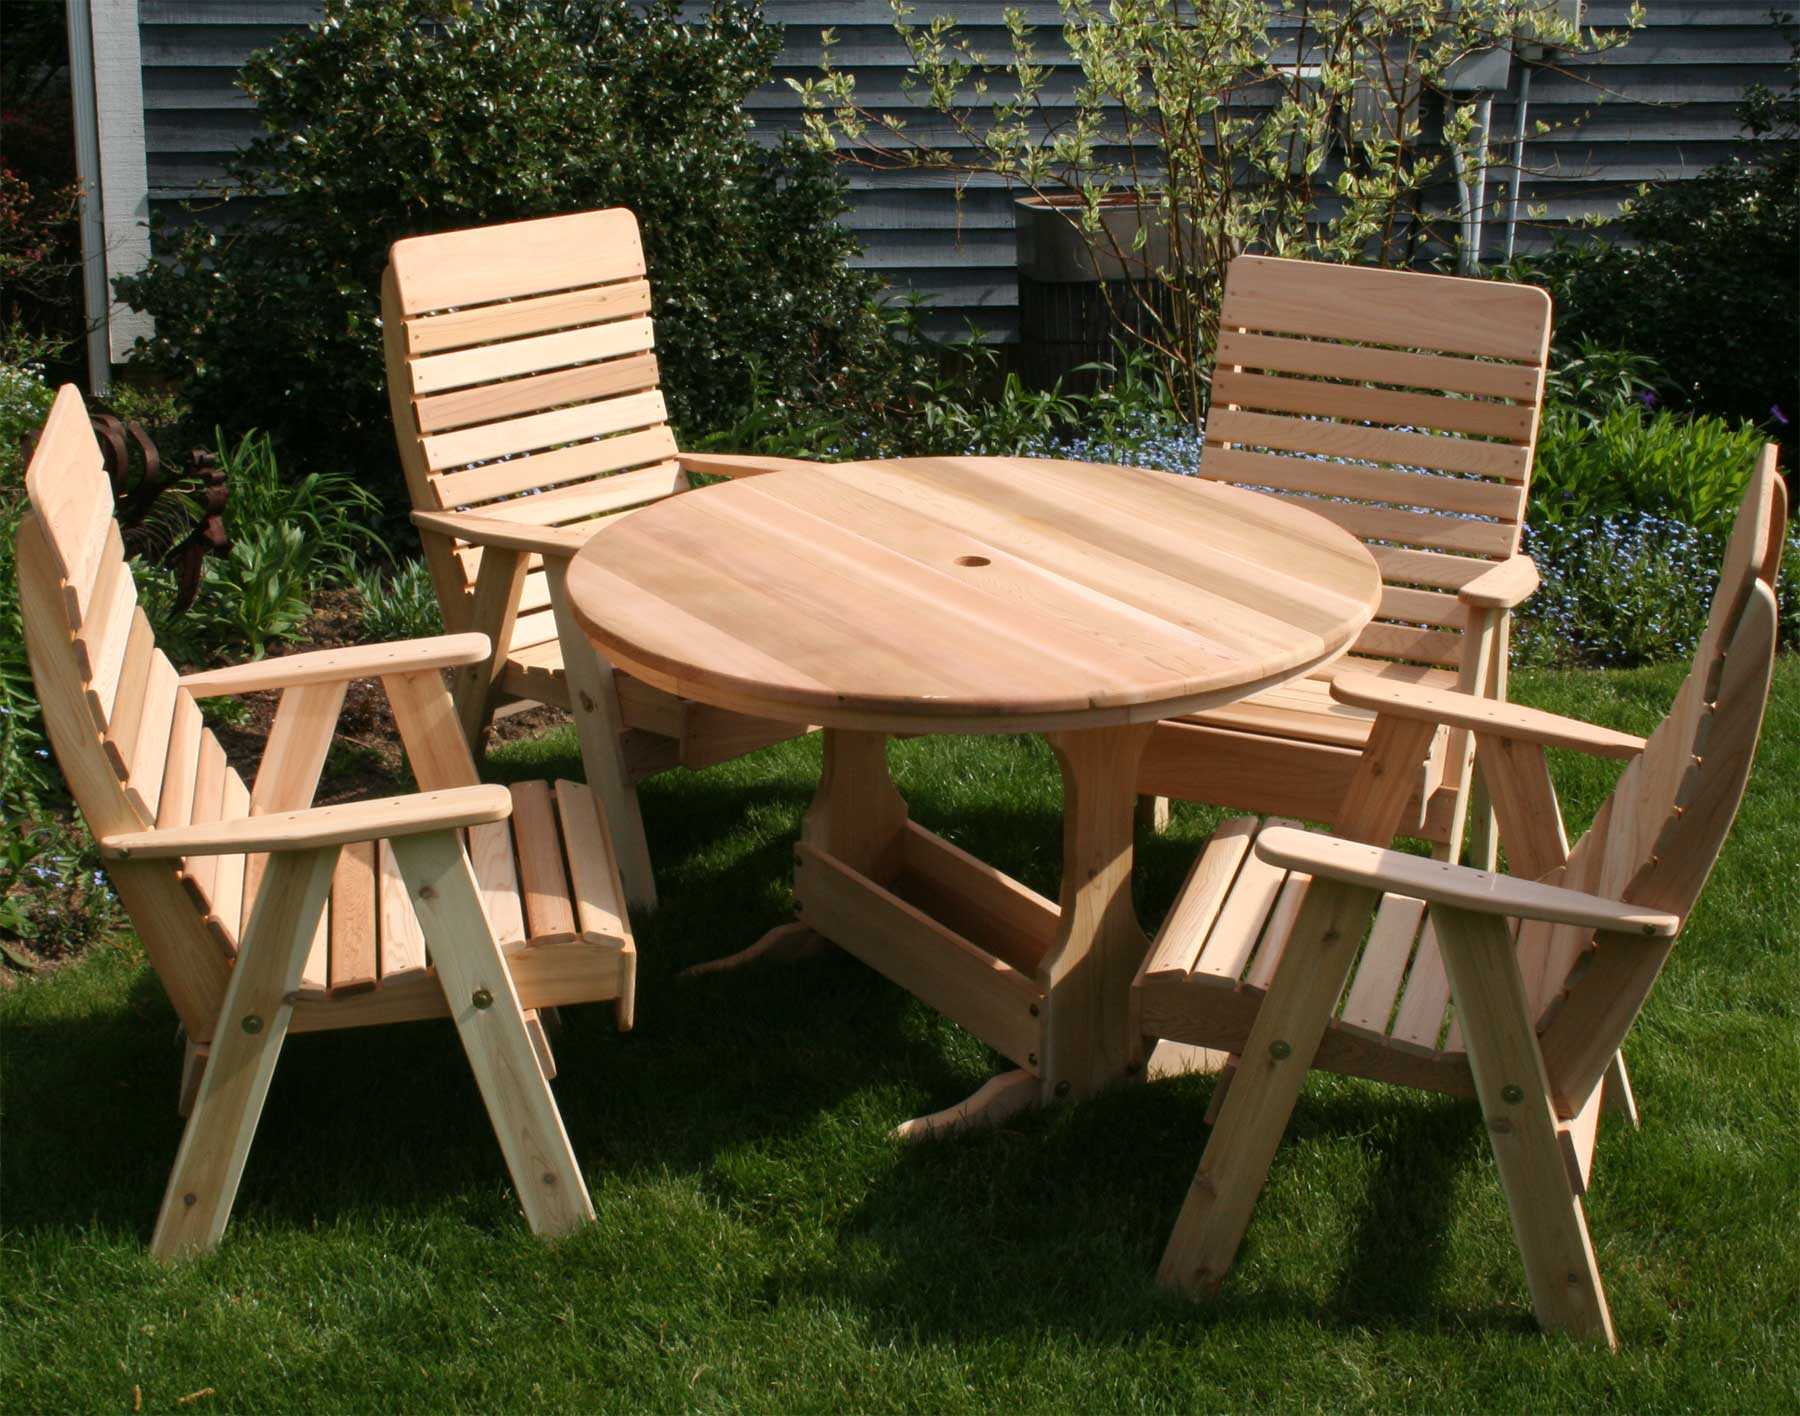 Admirable Red Cedar Round Trestle Picnic Table Set Andrewgaddart Wooden Chair Designs For Living Room Andrewgaddartcom